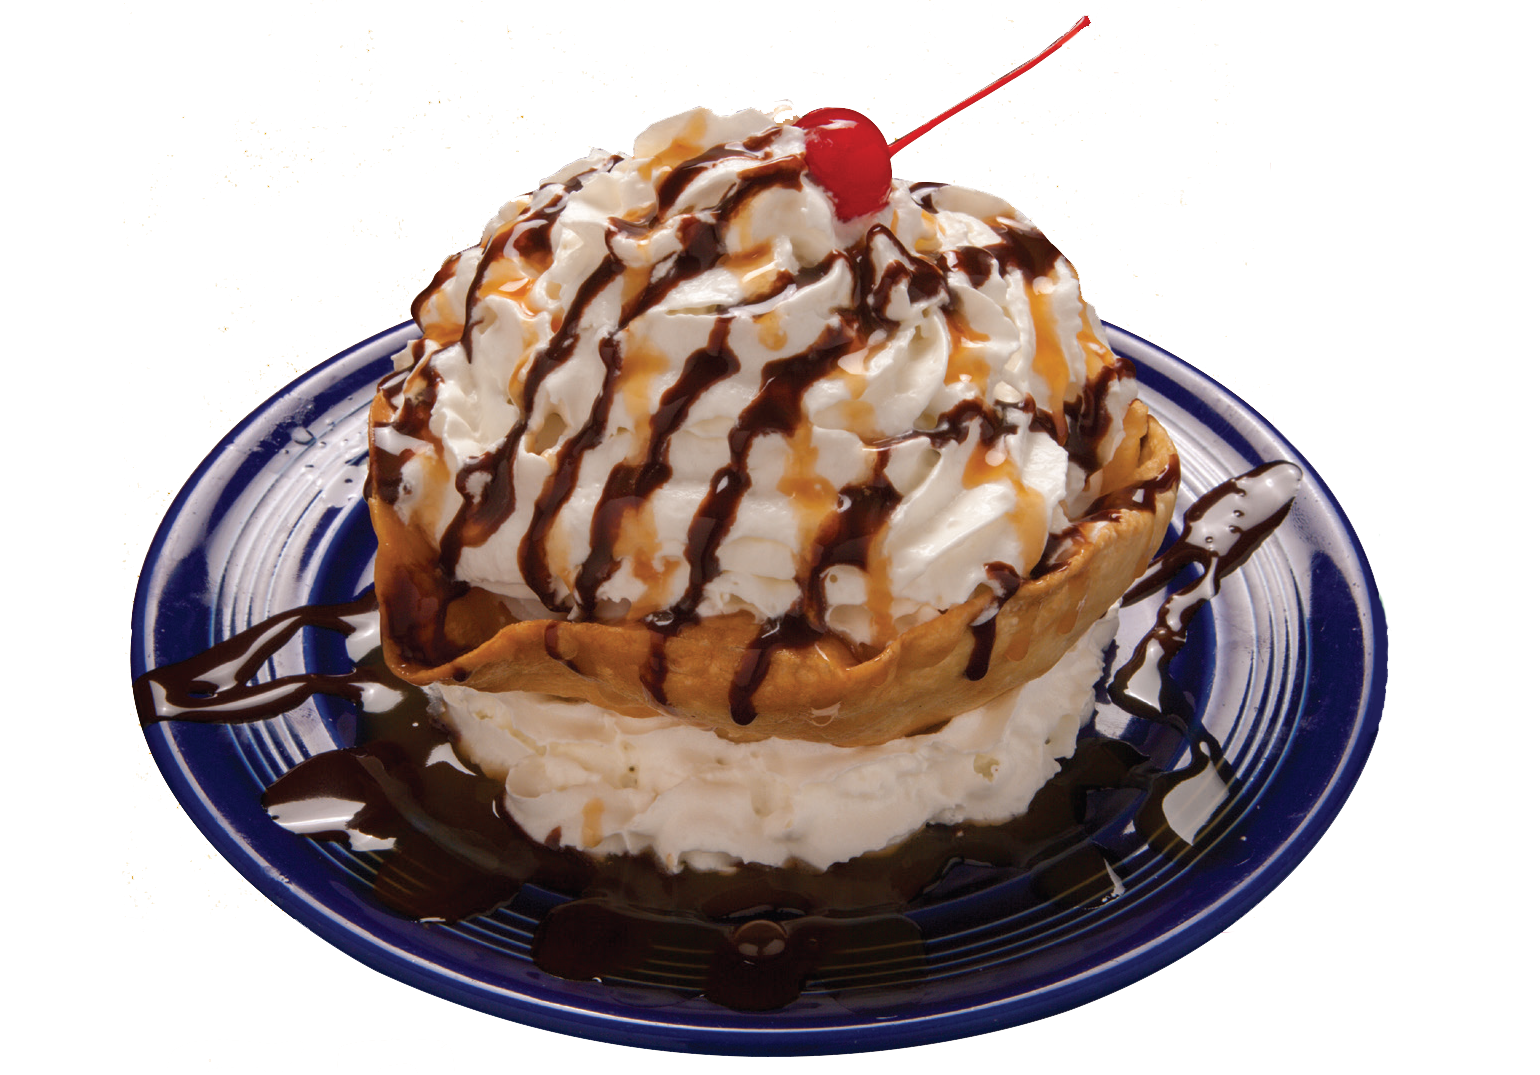 dessert topped with whipped cream, a cherry and chocolate drizzle